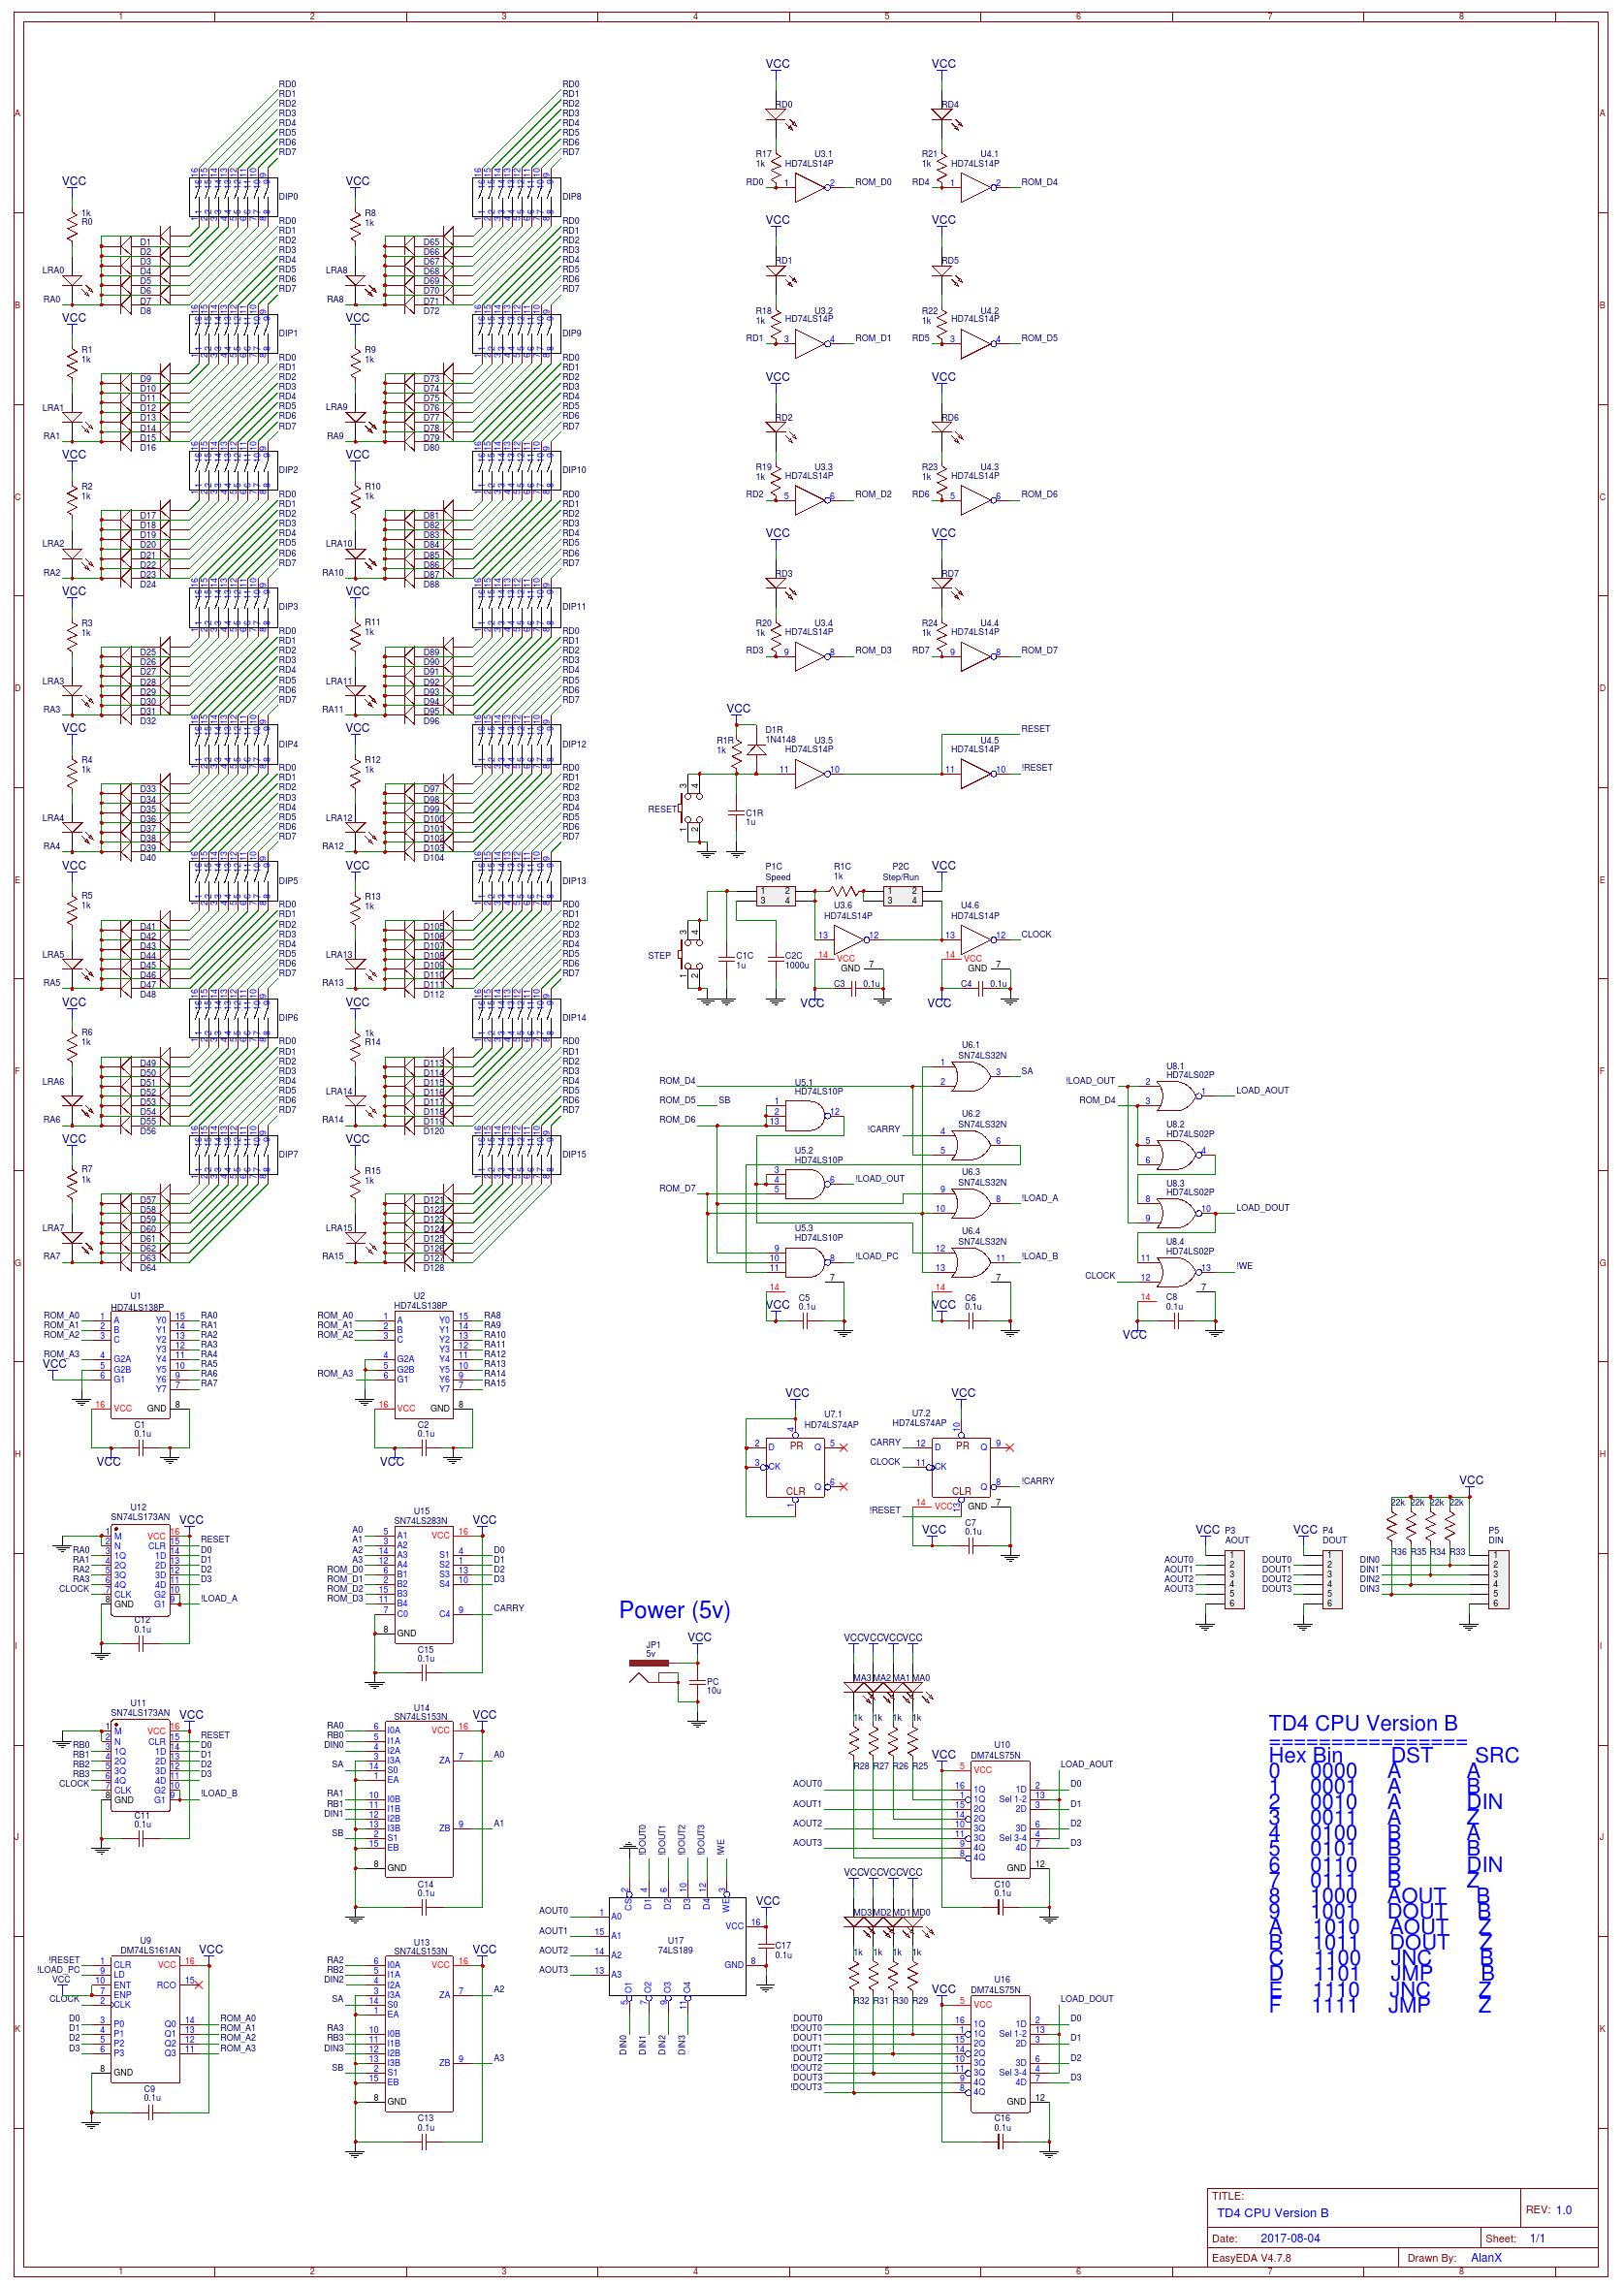 And the PCB: